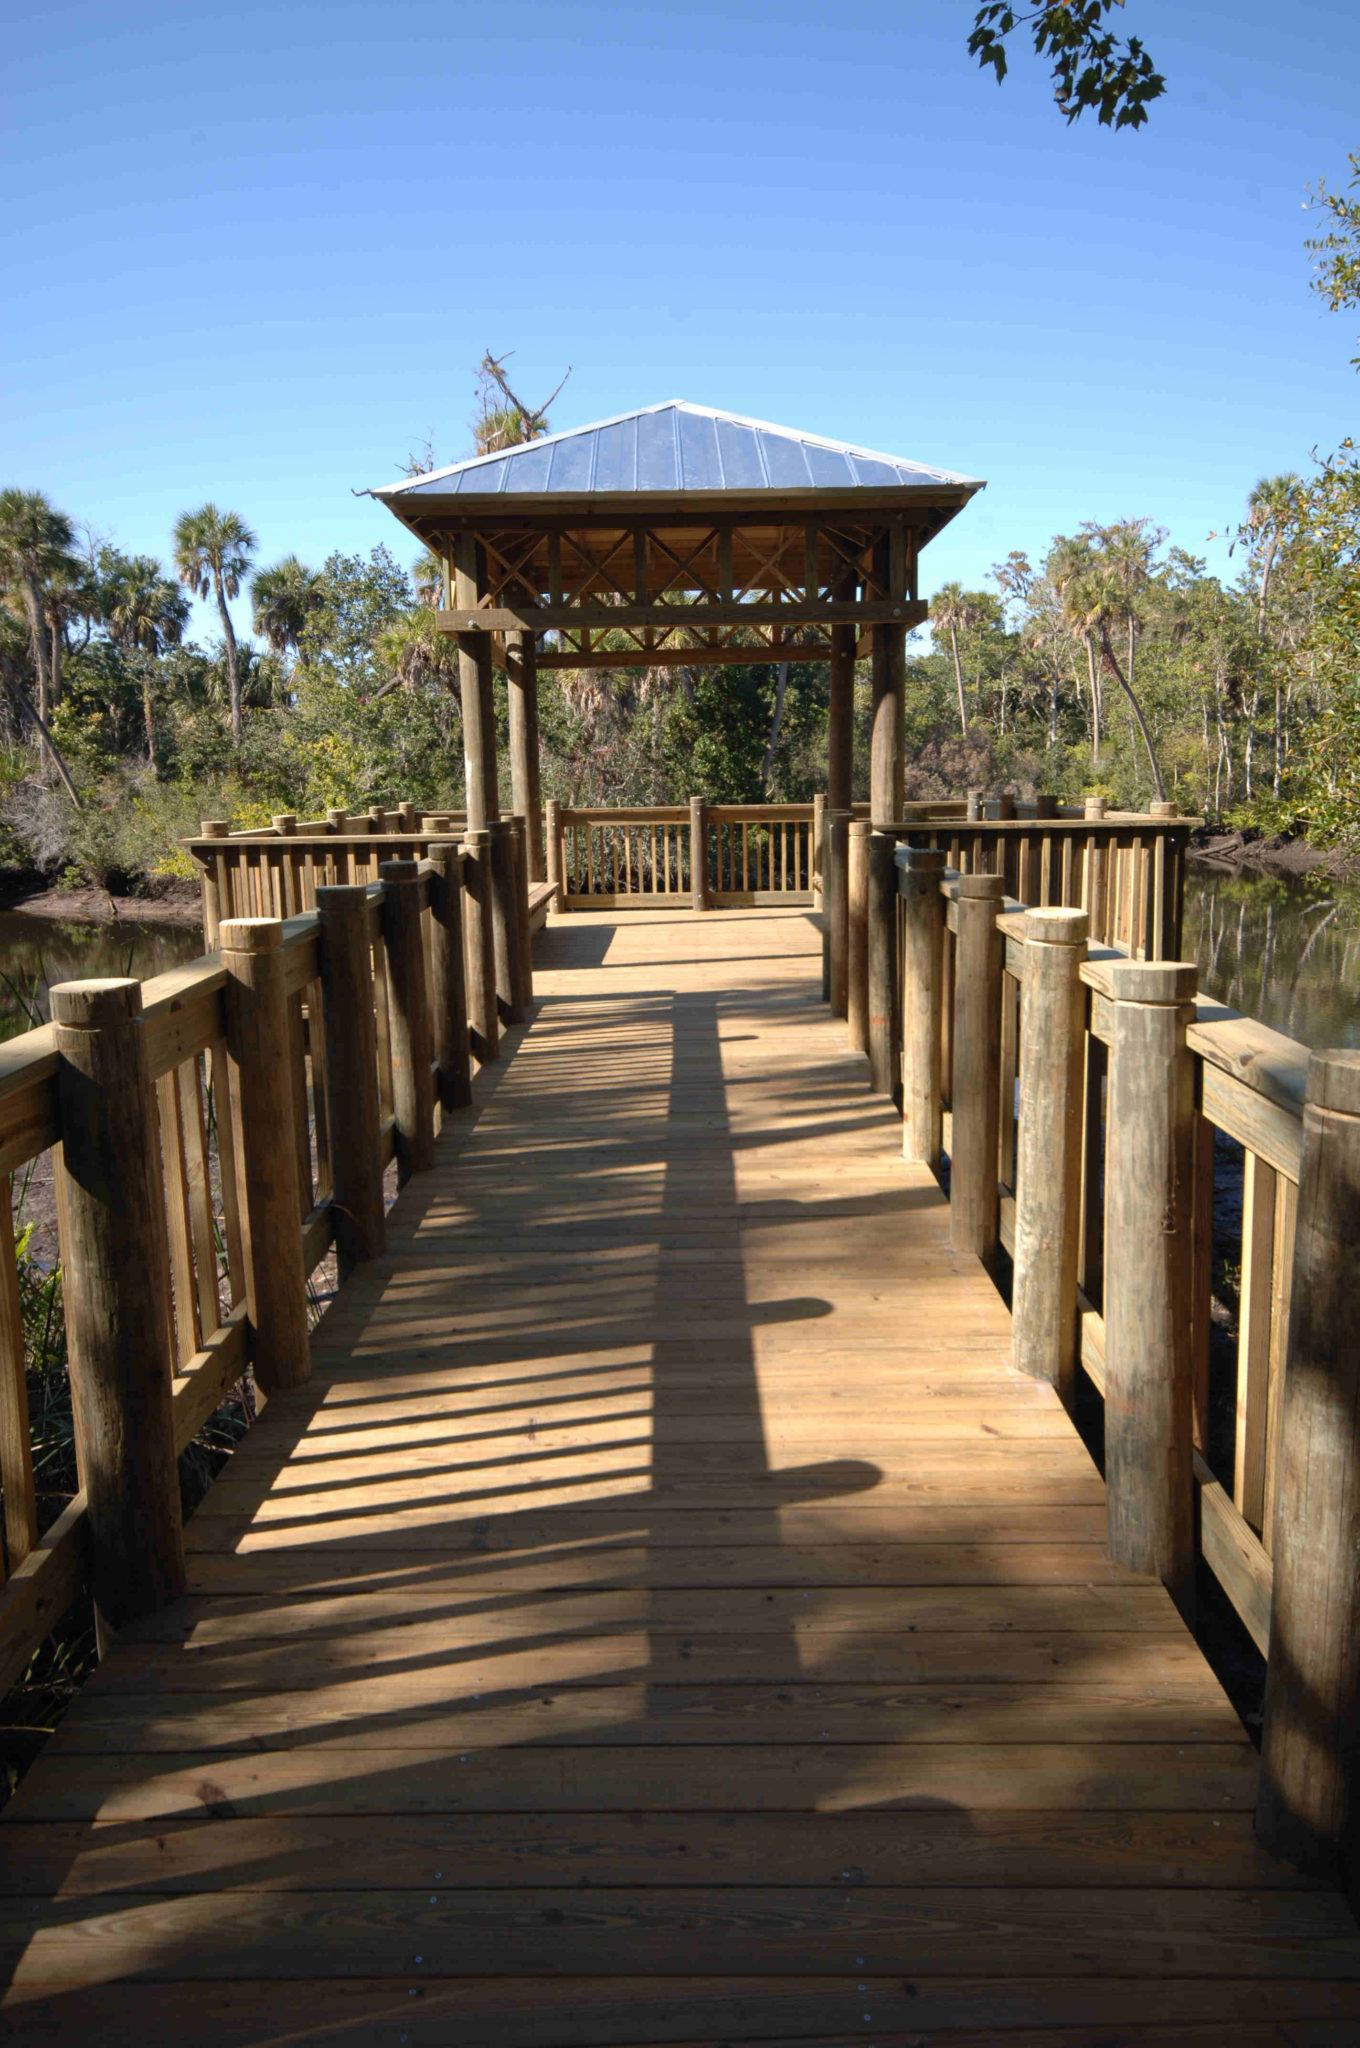 A timber boardwalk with gazebo roof at end of boardwalk in a park